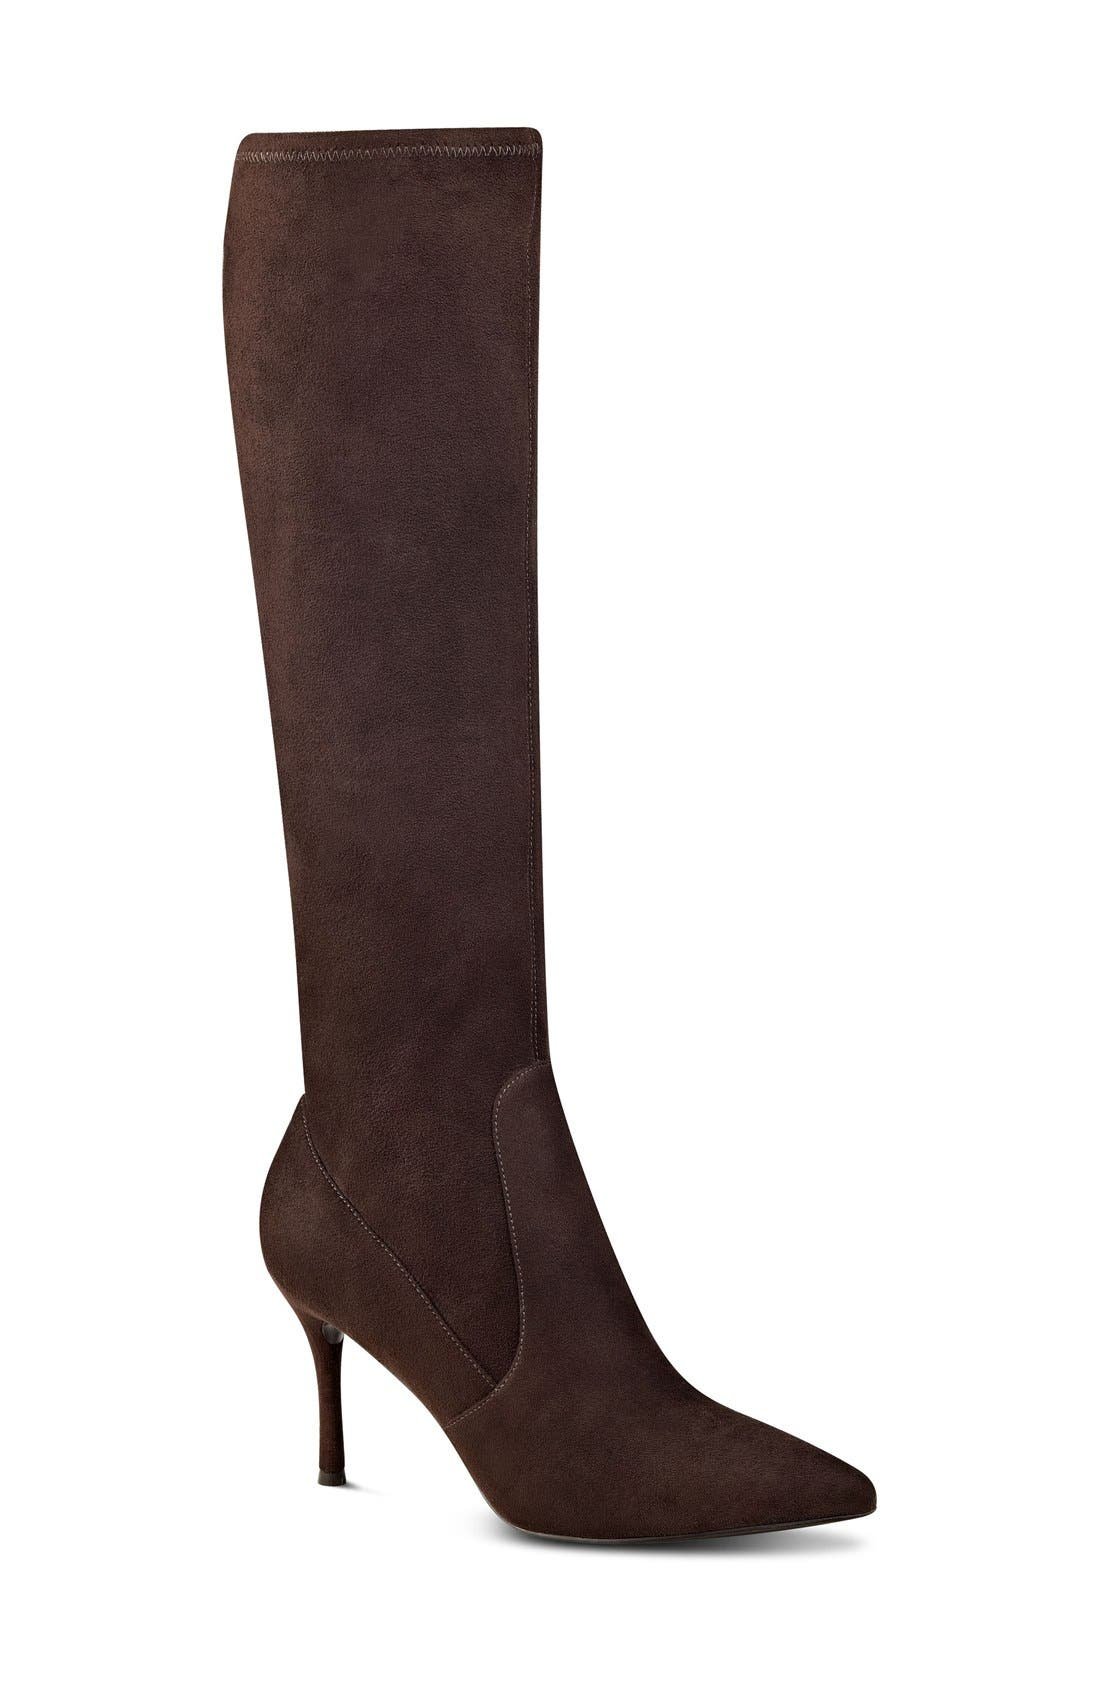 Alternate Image 1 Selected - Nine West 'Calla' Knee-High Boot (Women)